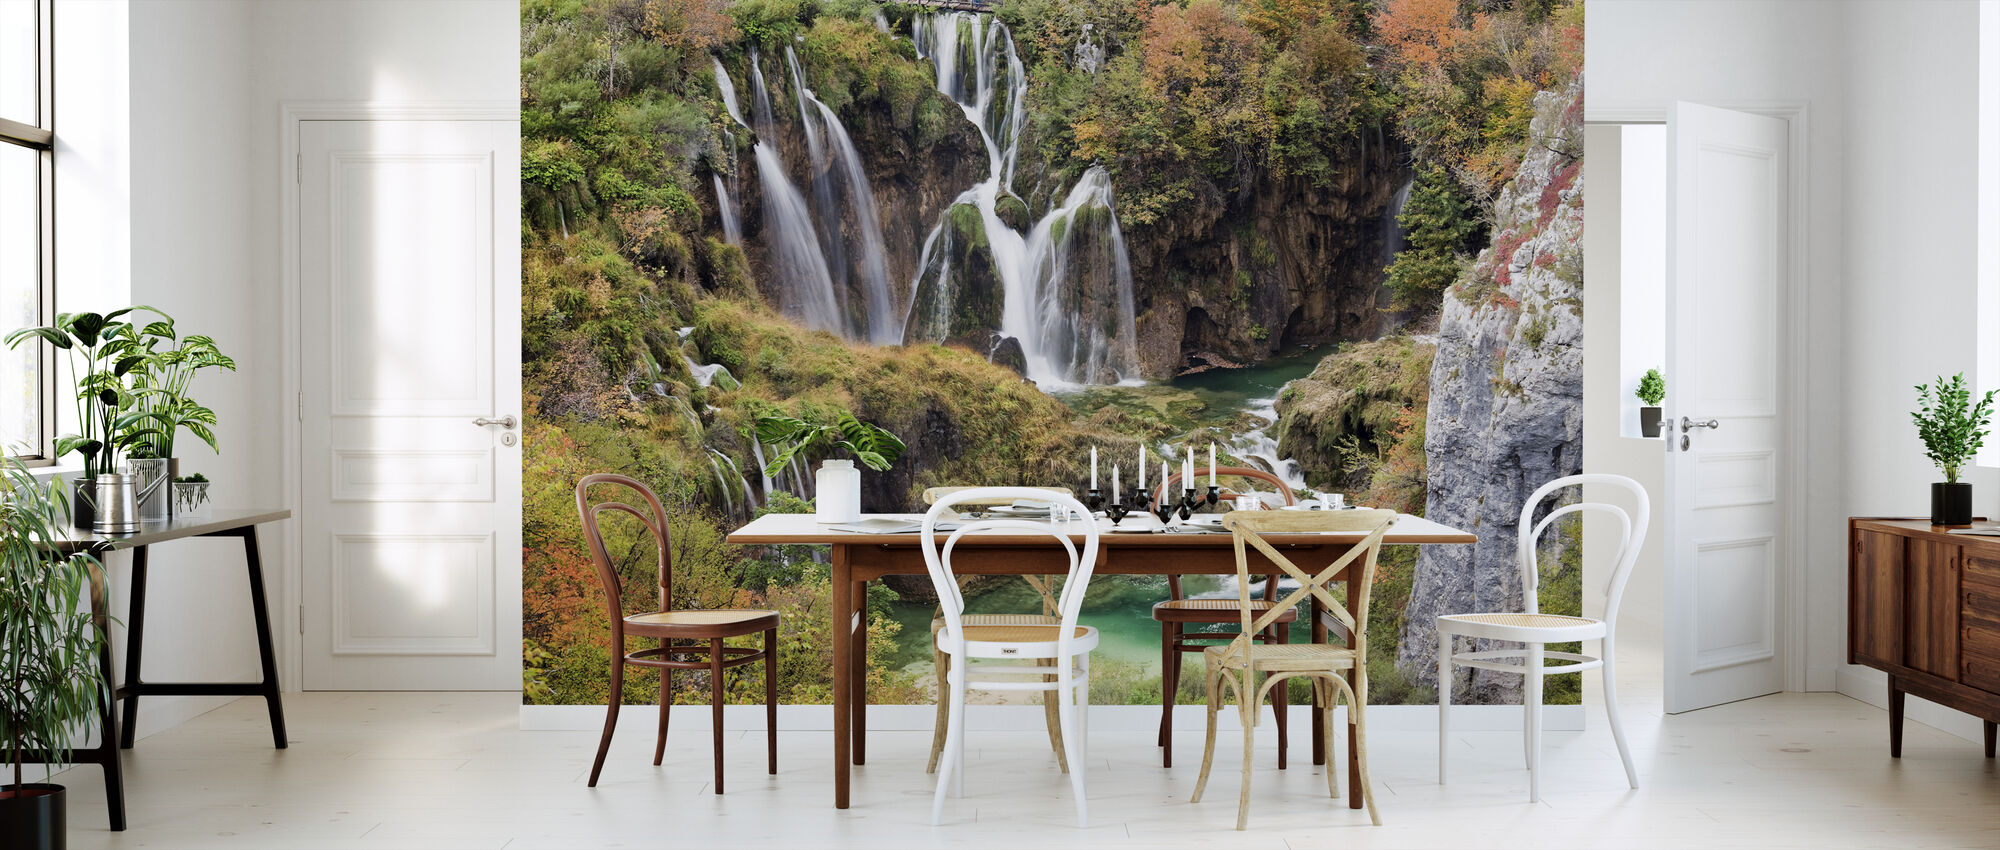 Waterfalls in Autumn Scenery - Wallpaper - Kitchen